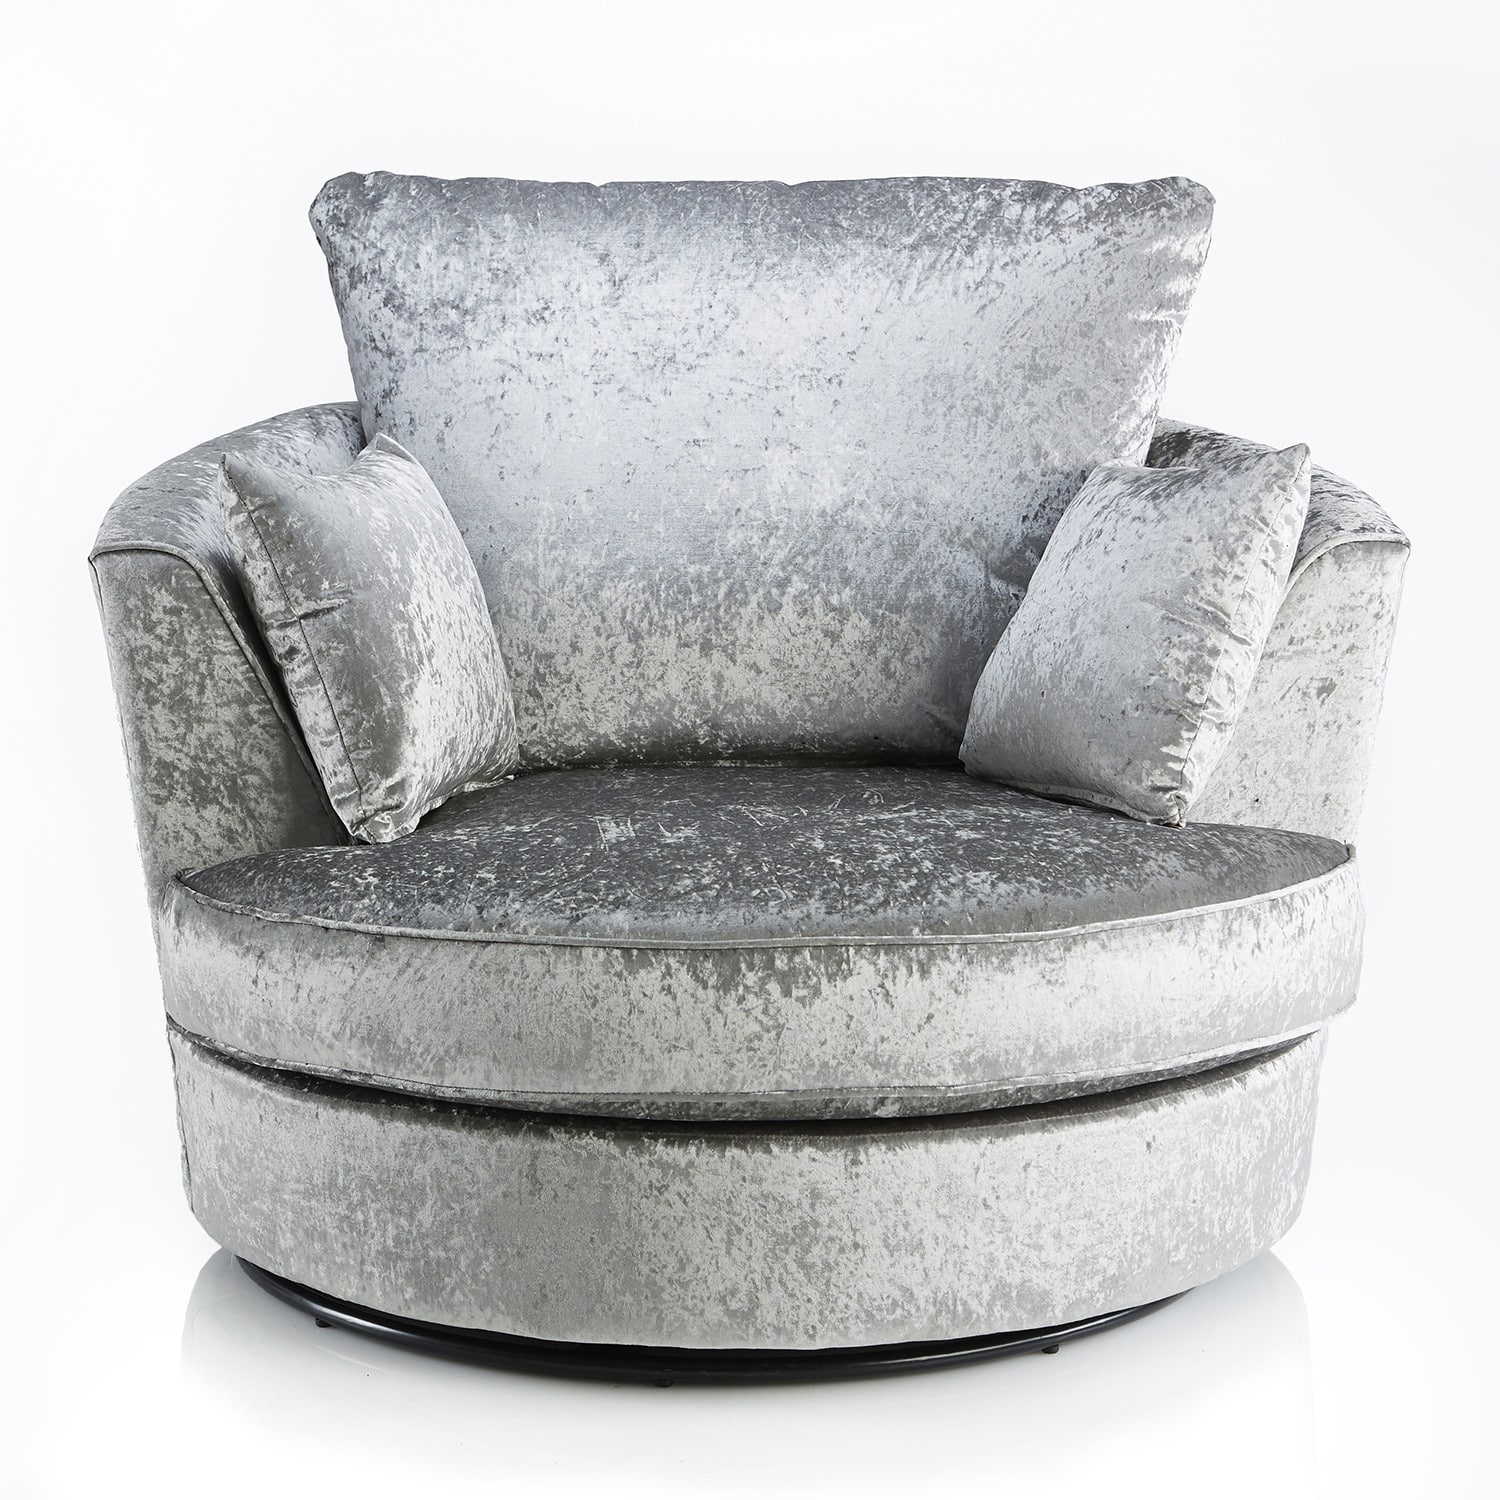 Crushed Velvet Furniture | Sofas, Beds, Chairs, Cushions With Sofas With Swivel Chair (View 6 of 10)